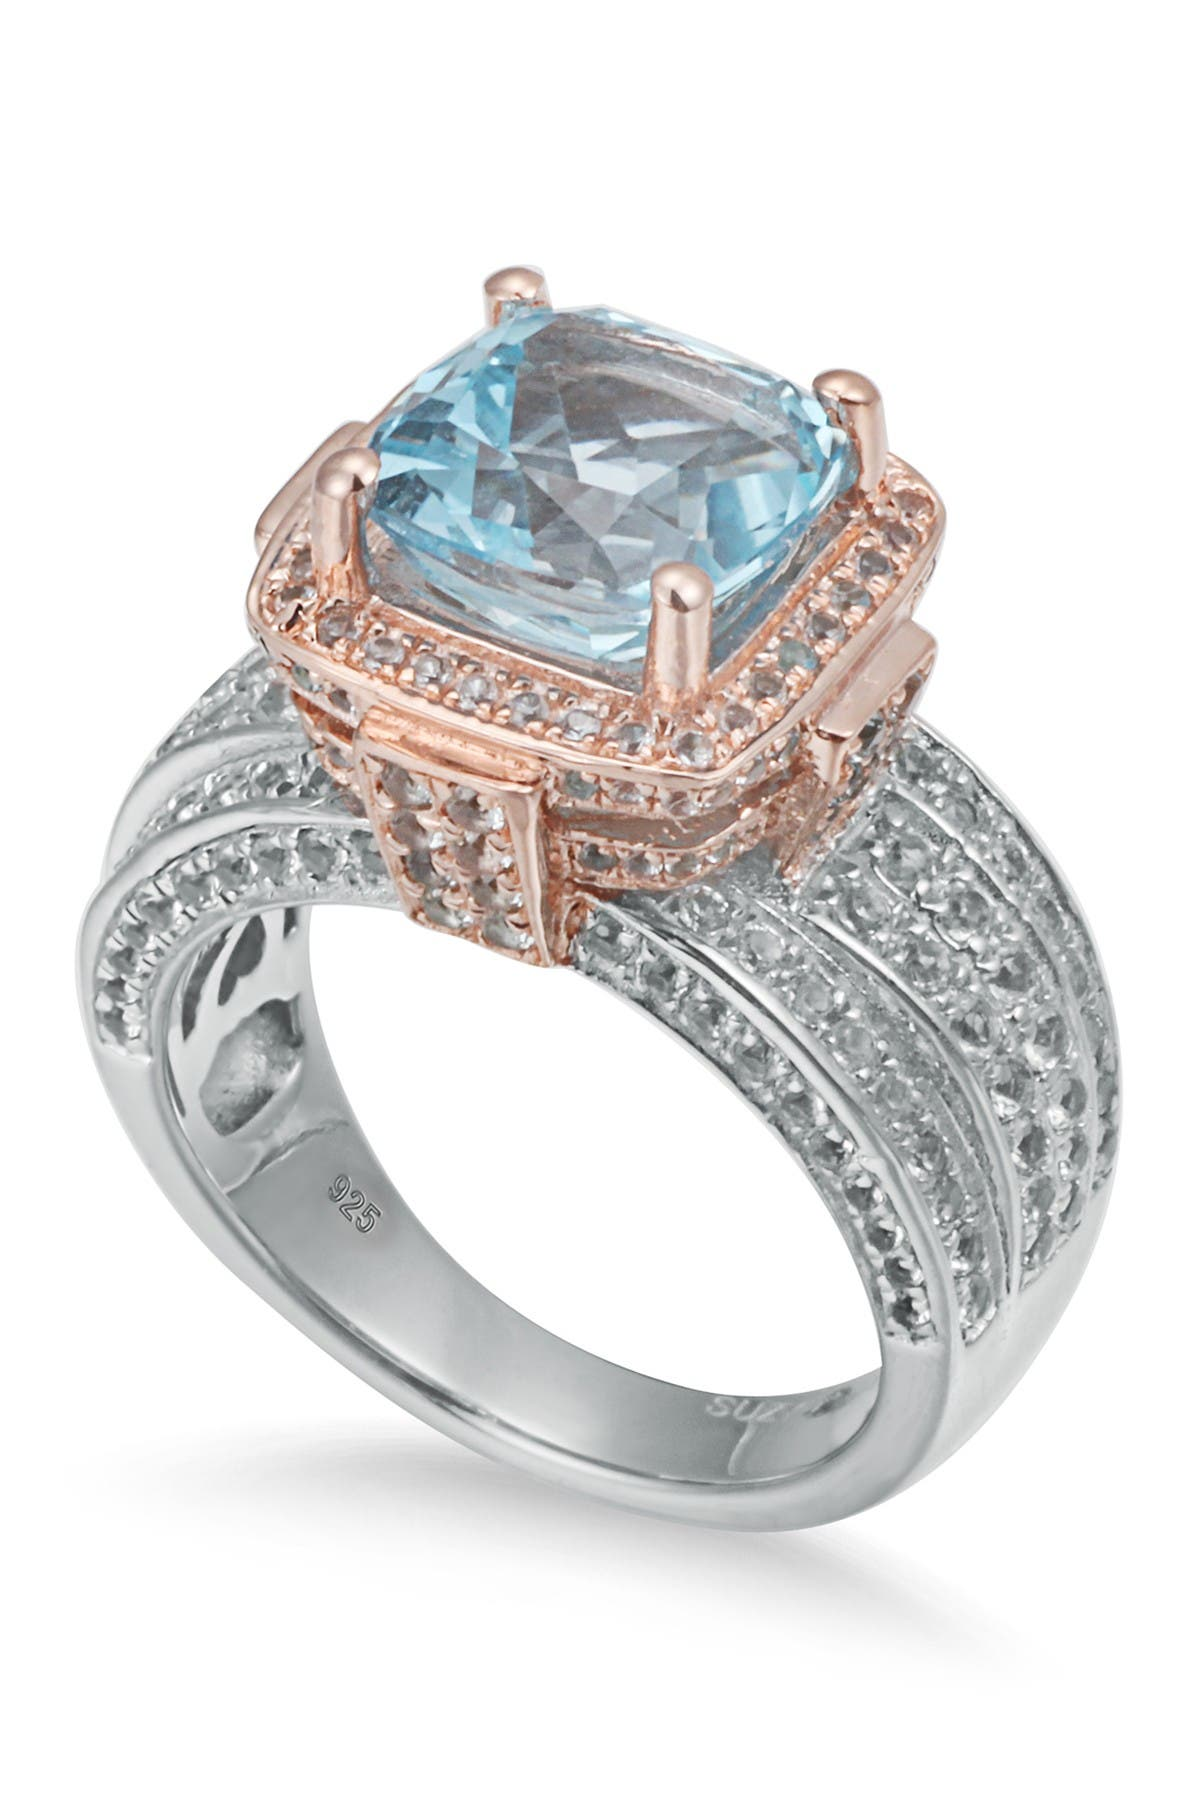 Image of Suzy Levian Sterling Silver Cushion Blue and White Topaz Ring